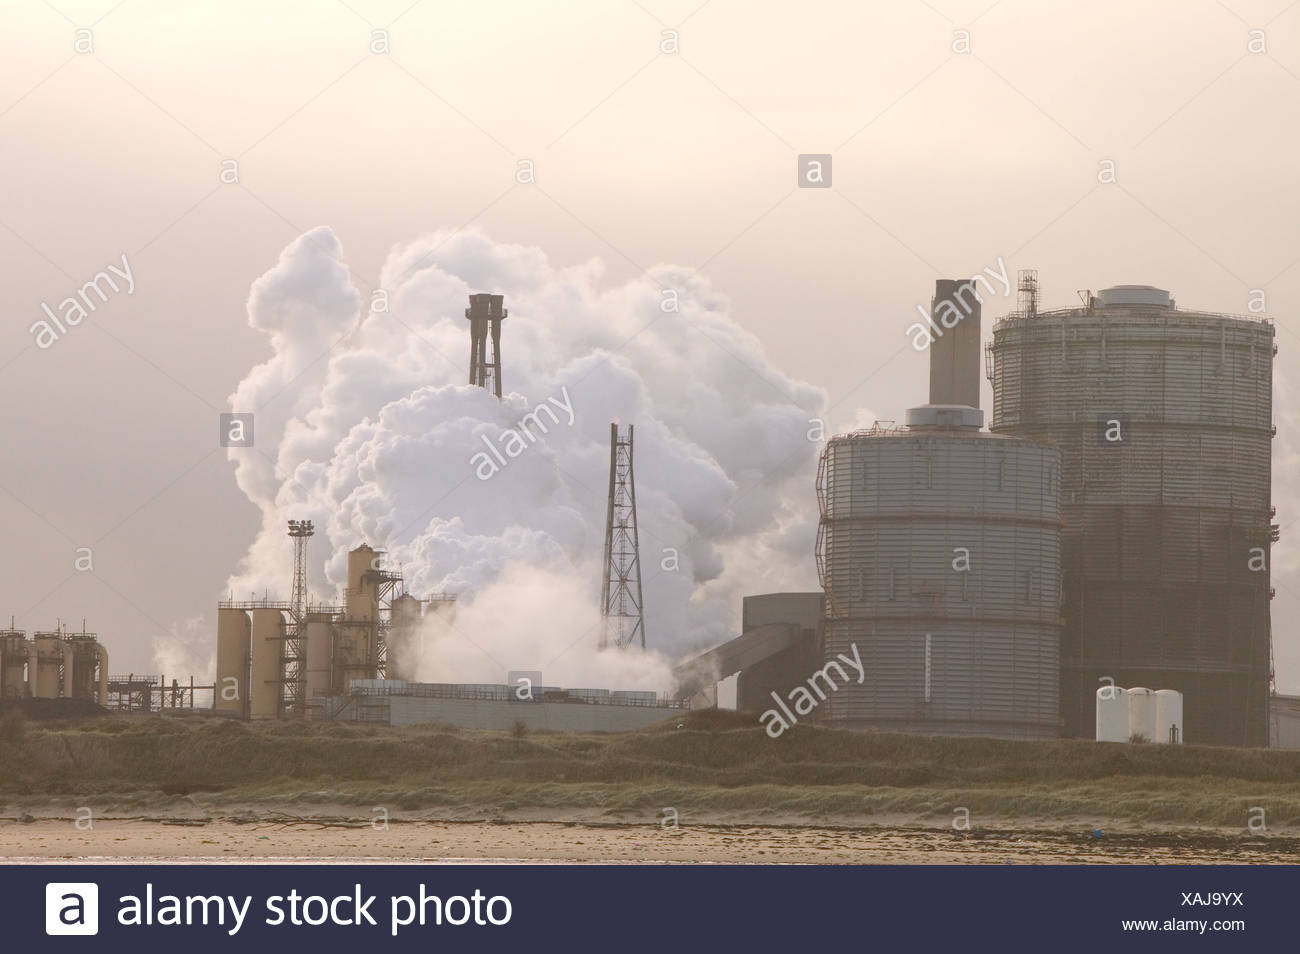 The corus steelworks at Redcar, Teeside, releasing clouds of steam and pollution - Stock Image